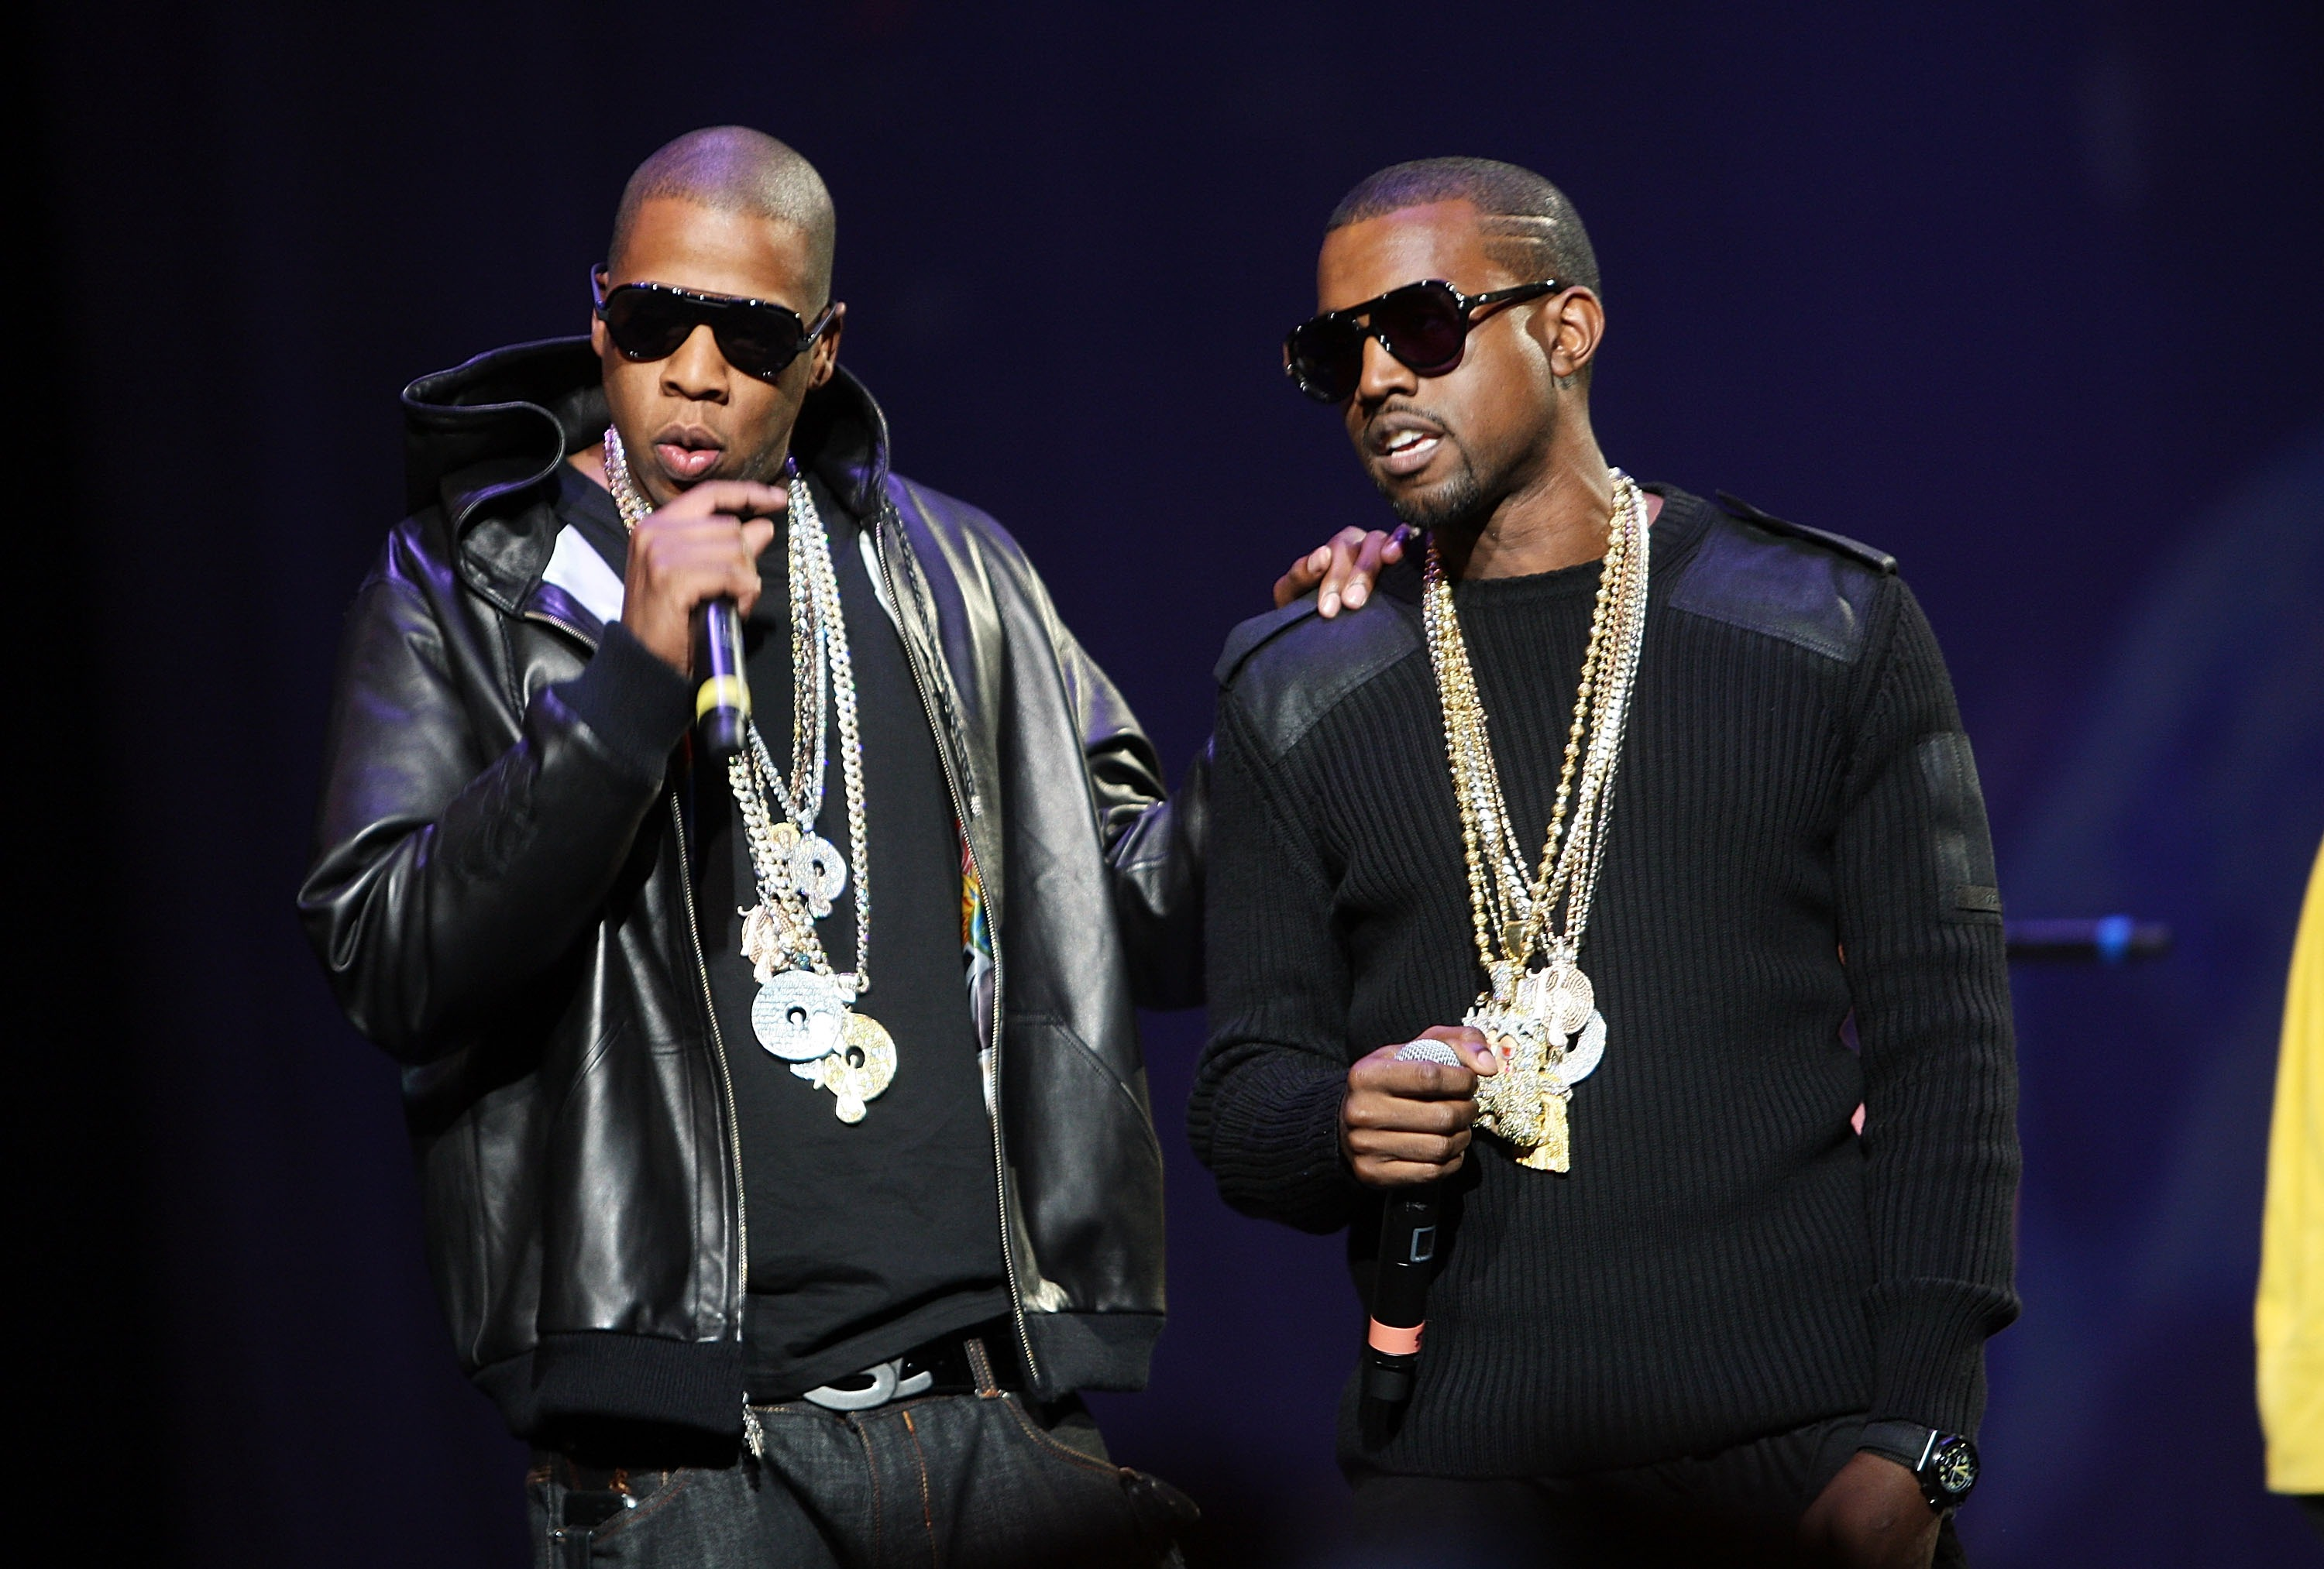 jay-z-kanye-multiple-roc-a-fella-chains-pieces-on